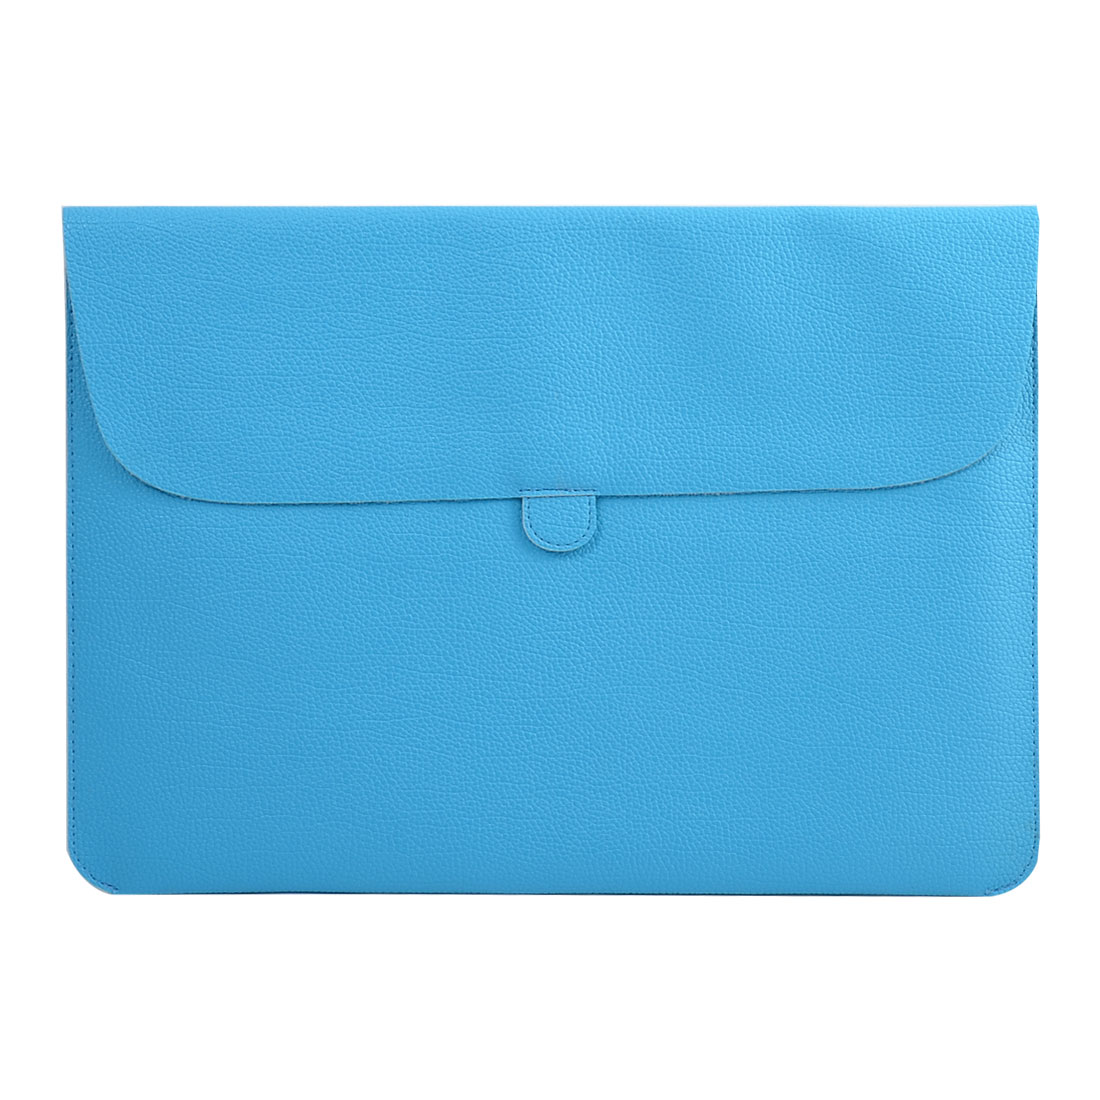 Carrying Laptop Case Pouch Envelope Shape Tablet Sleeve Bag Maya Blue for Macbook 13.3""